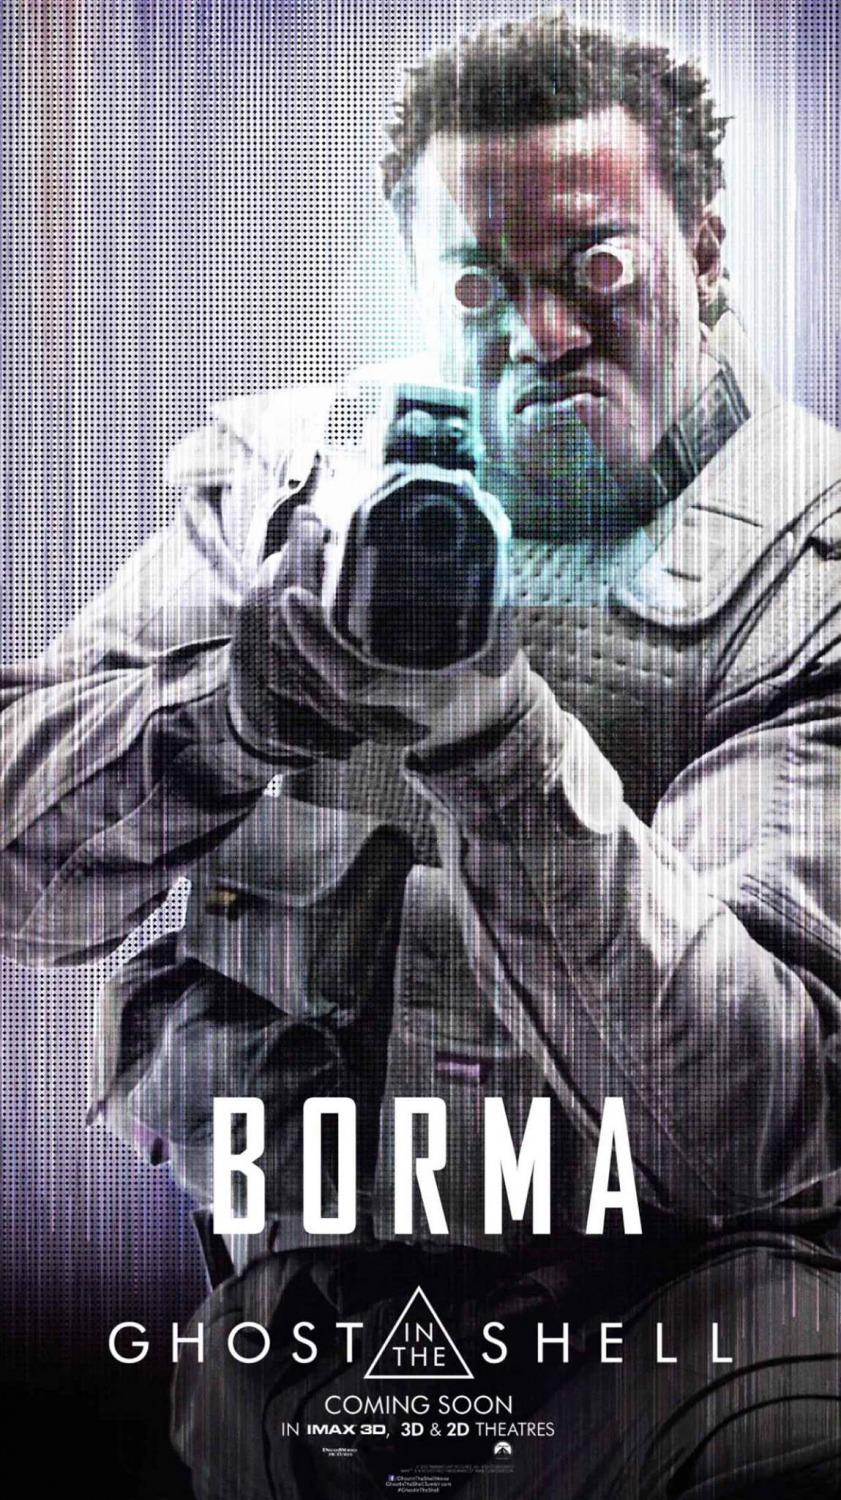 Ghost in the Shell (live action film 2017) poster Borma